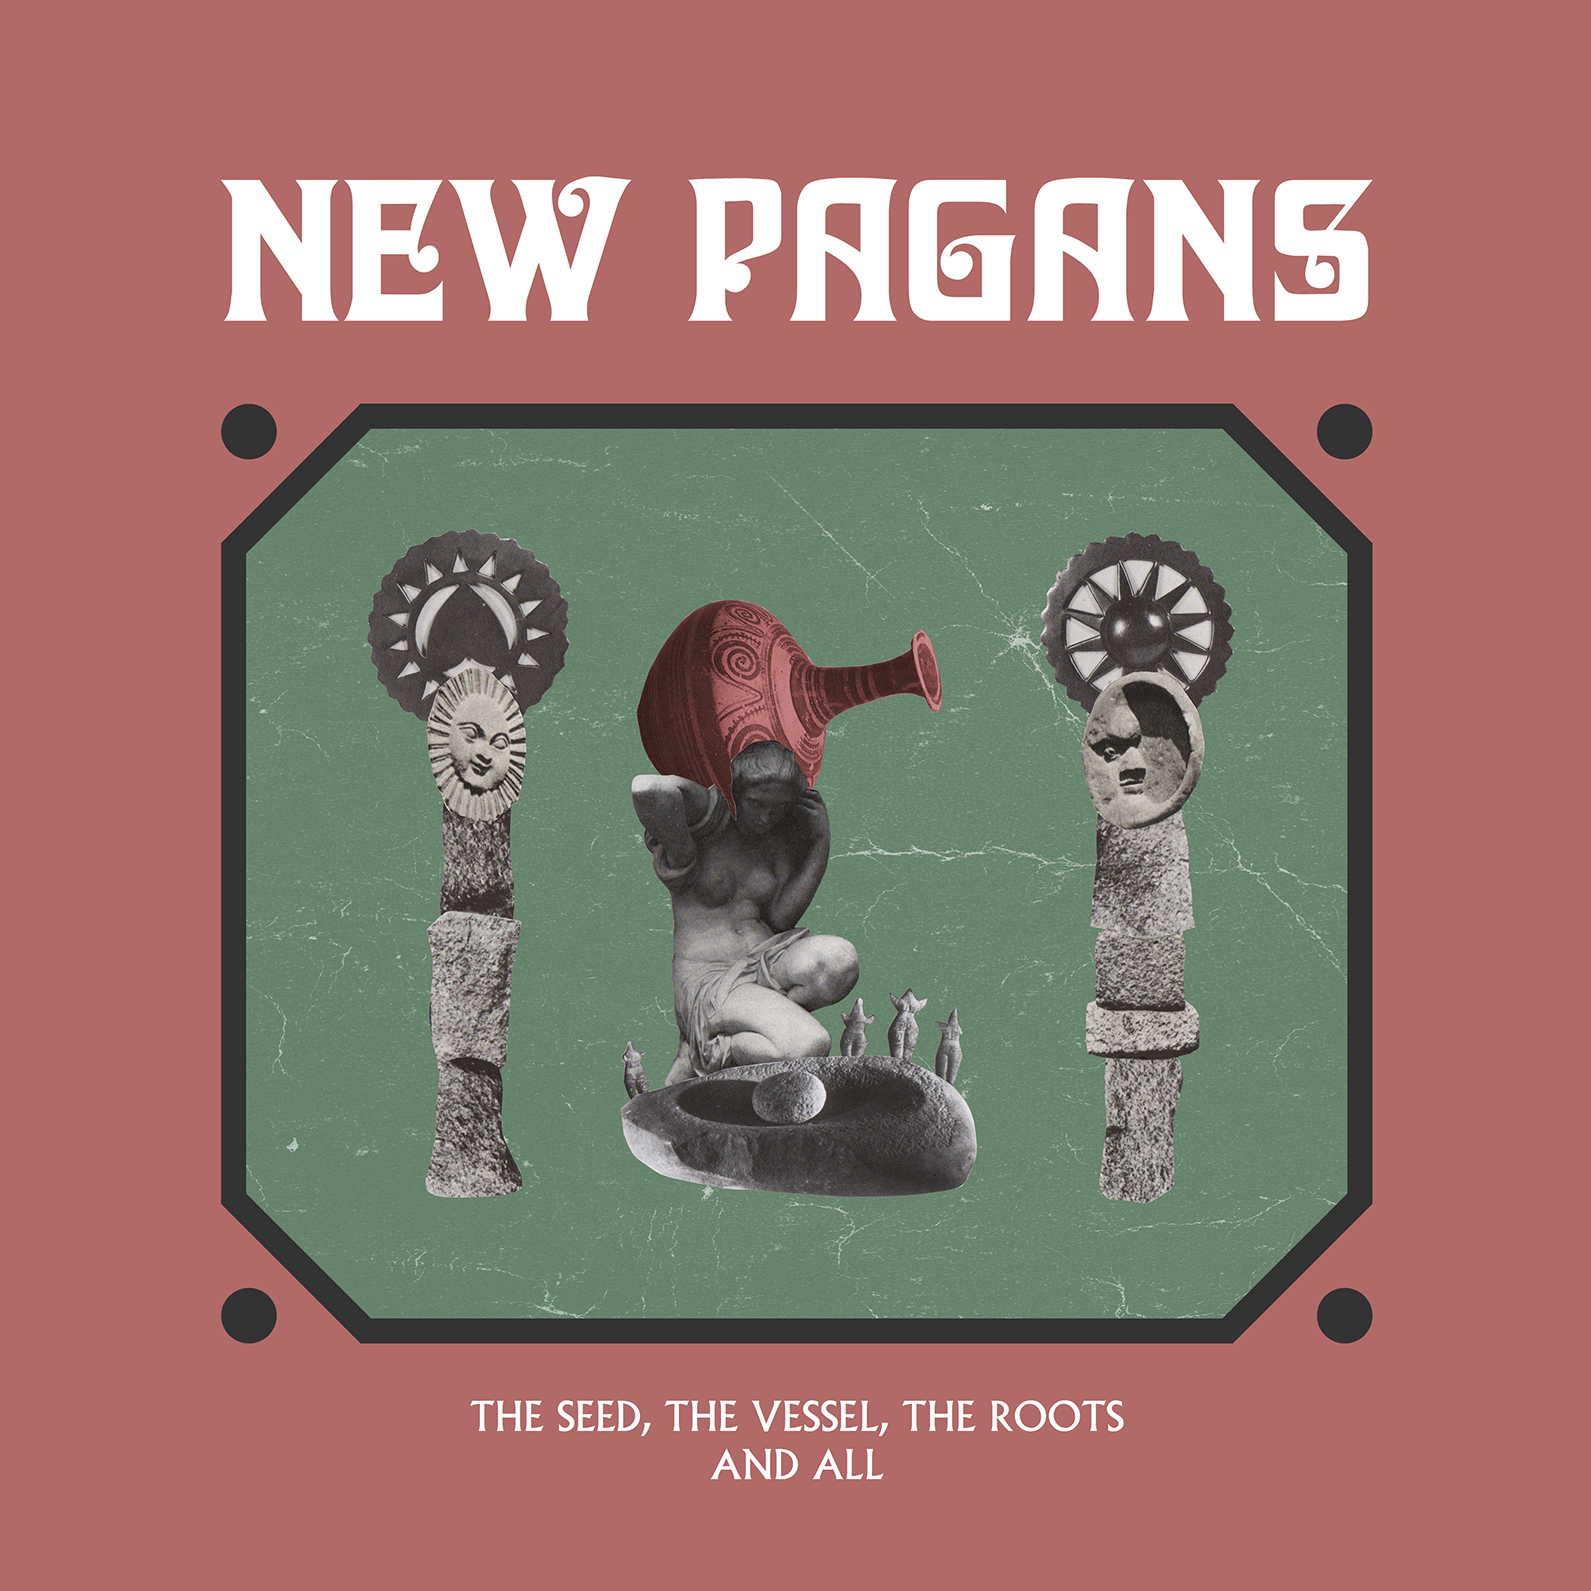 ALBUM REVIEW: New Pagans - The Seed, The Vessel, The Roots and All